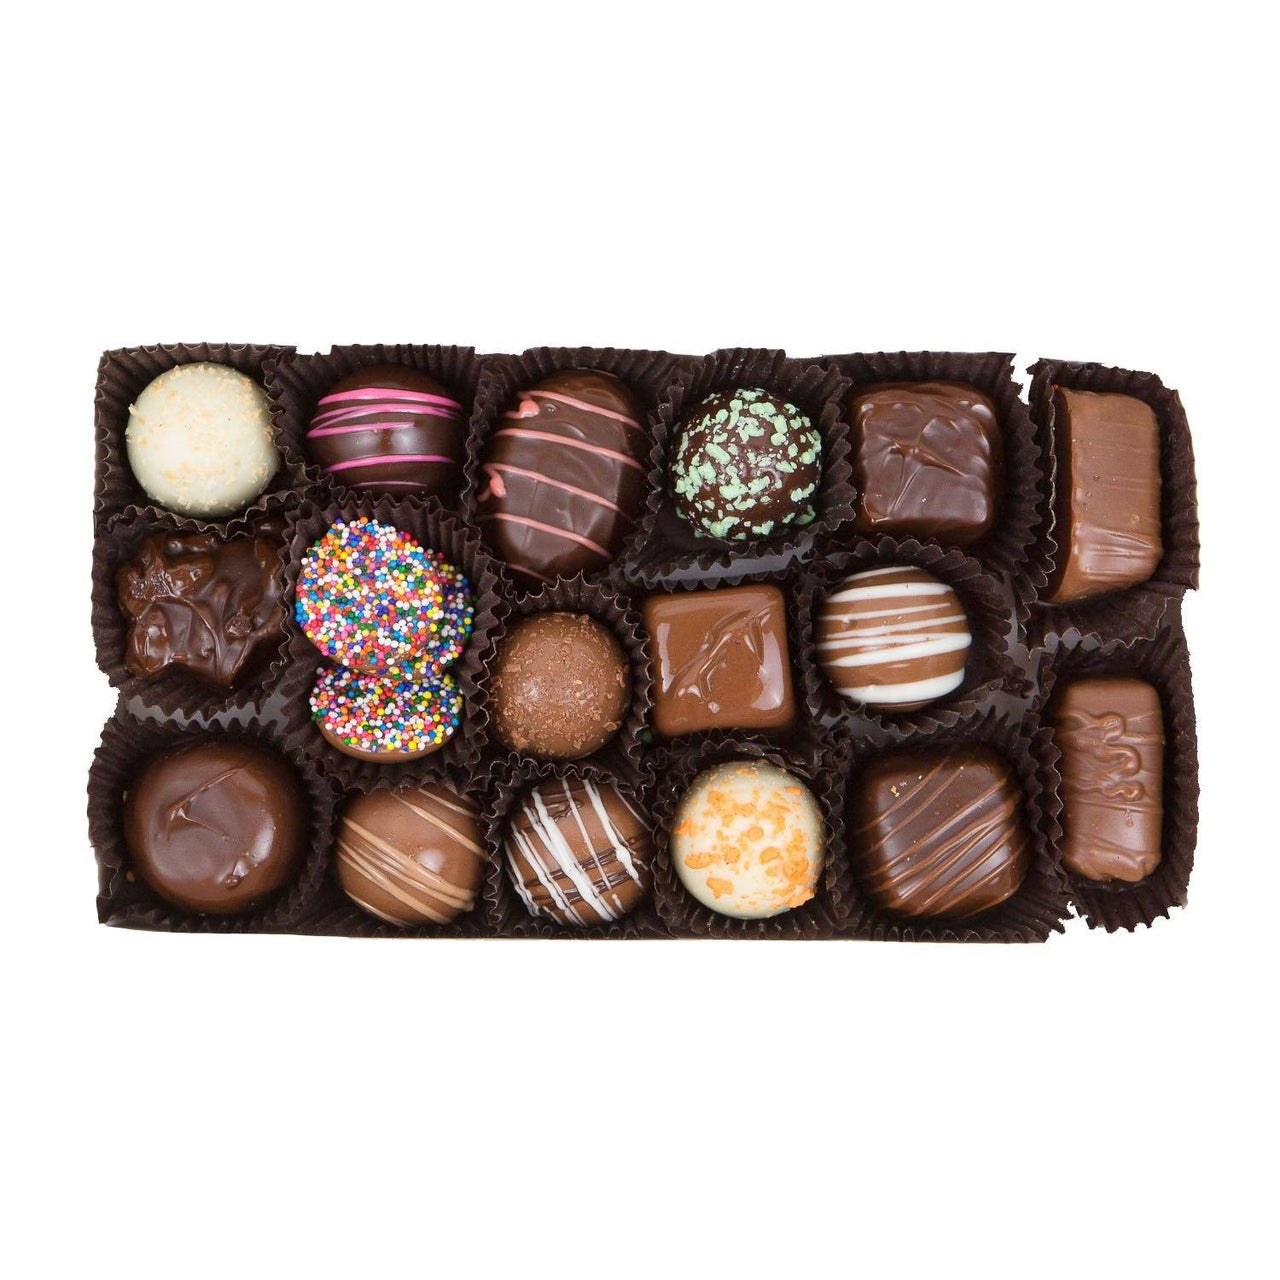 Secret Santa Gift Ideas for Coworkers  - Chocolate Assortment Gift Box - Jackie's Chocolate (4336370417779)